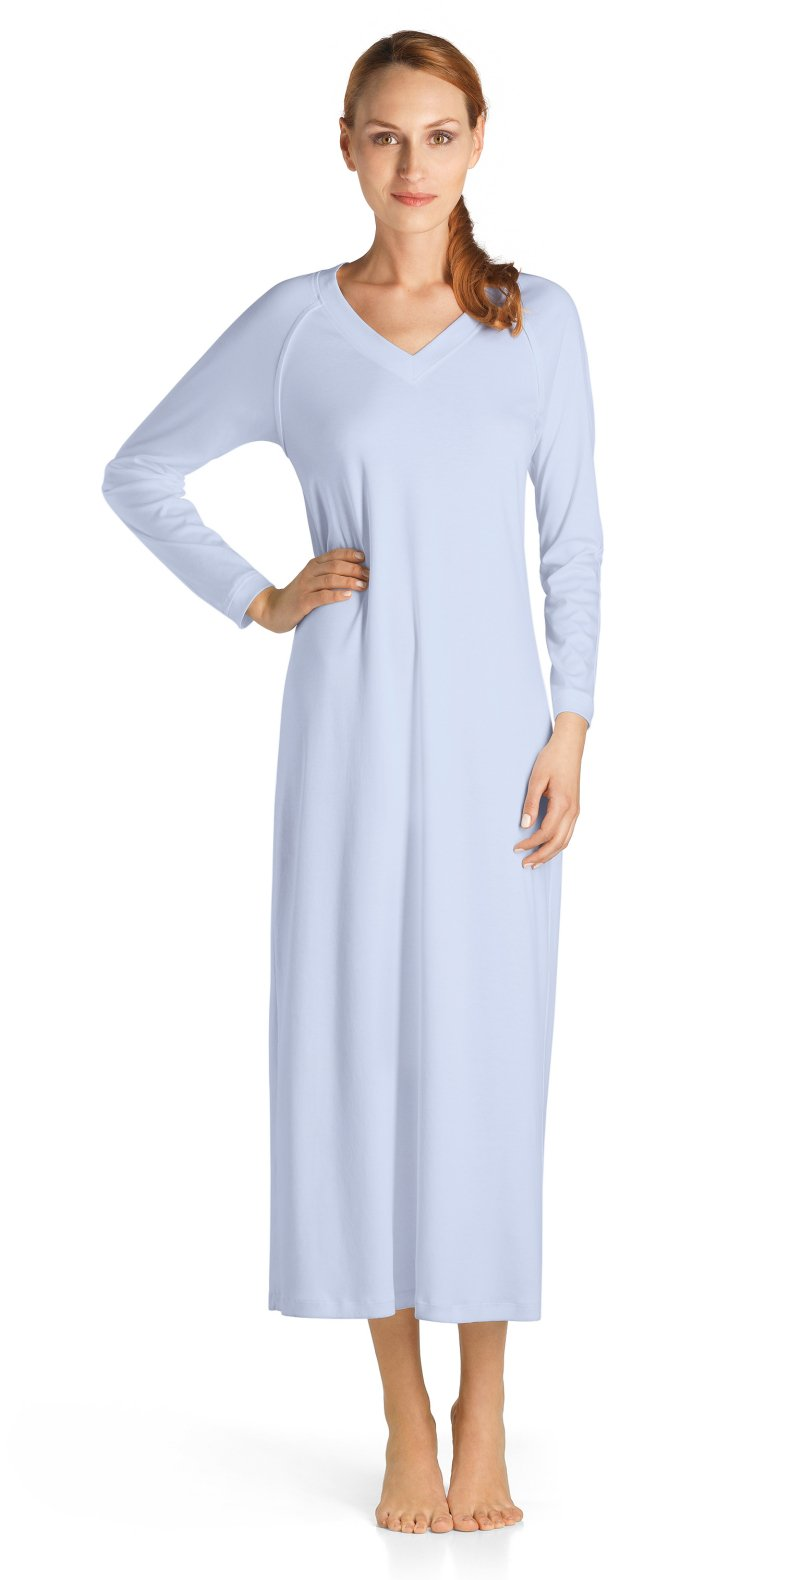 Hanro Women's Pure Essence Sleeve Long Gown, Blue Glow, Large by HANRO (Image #1)